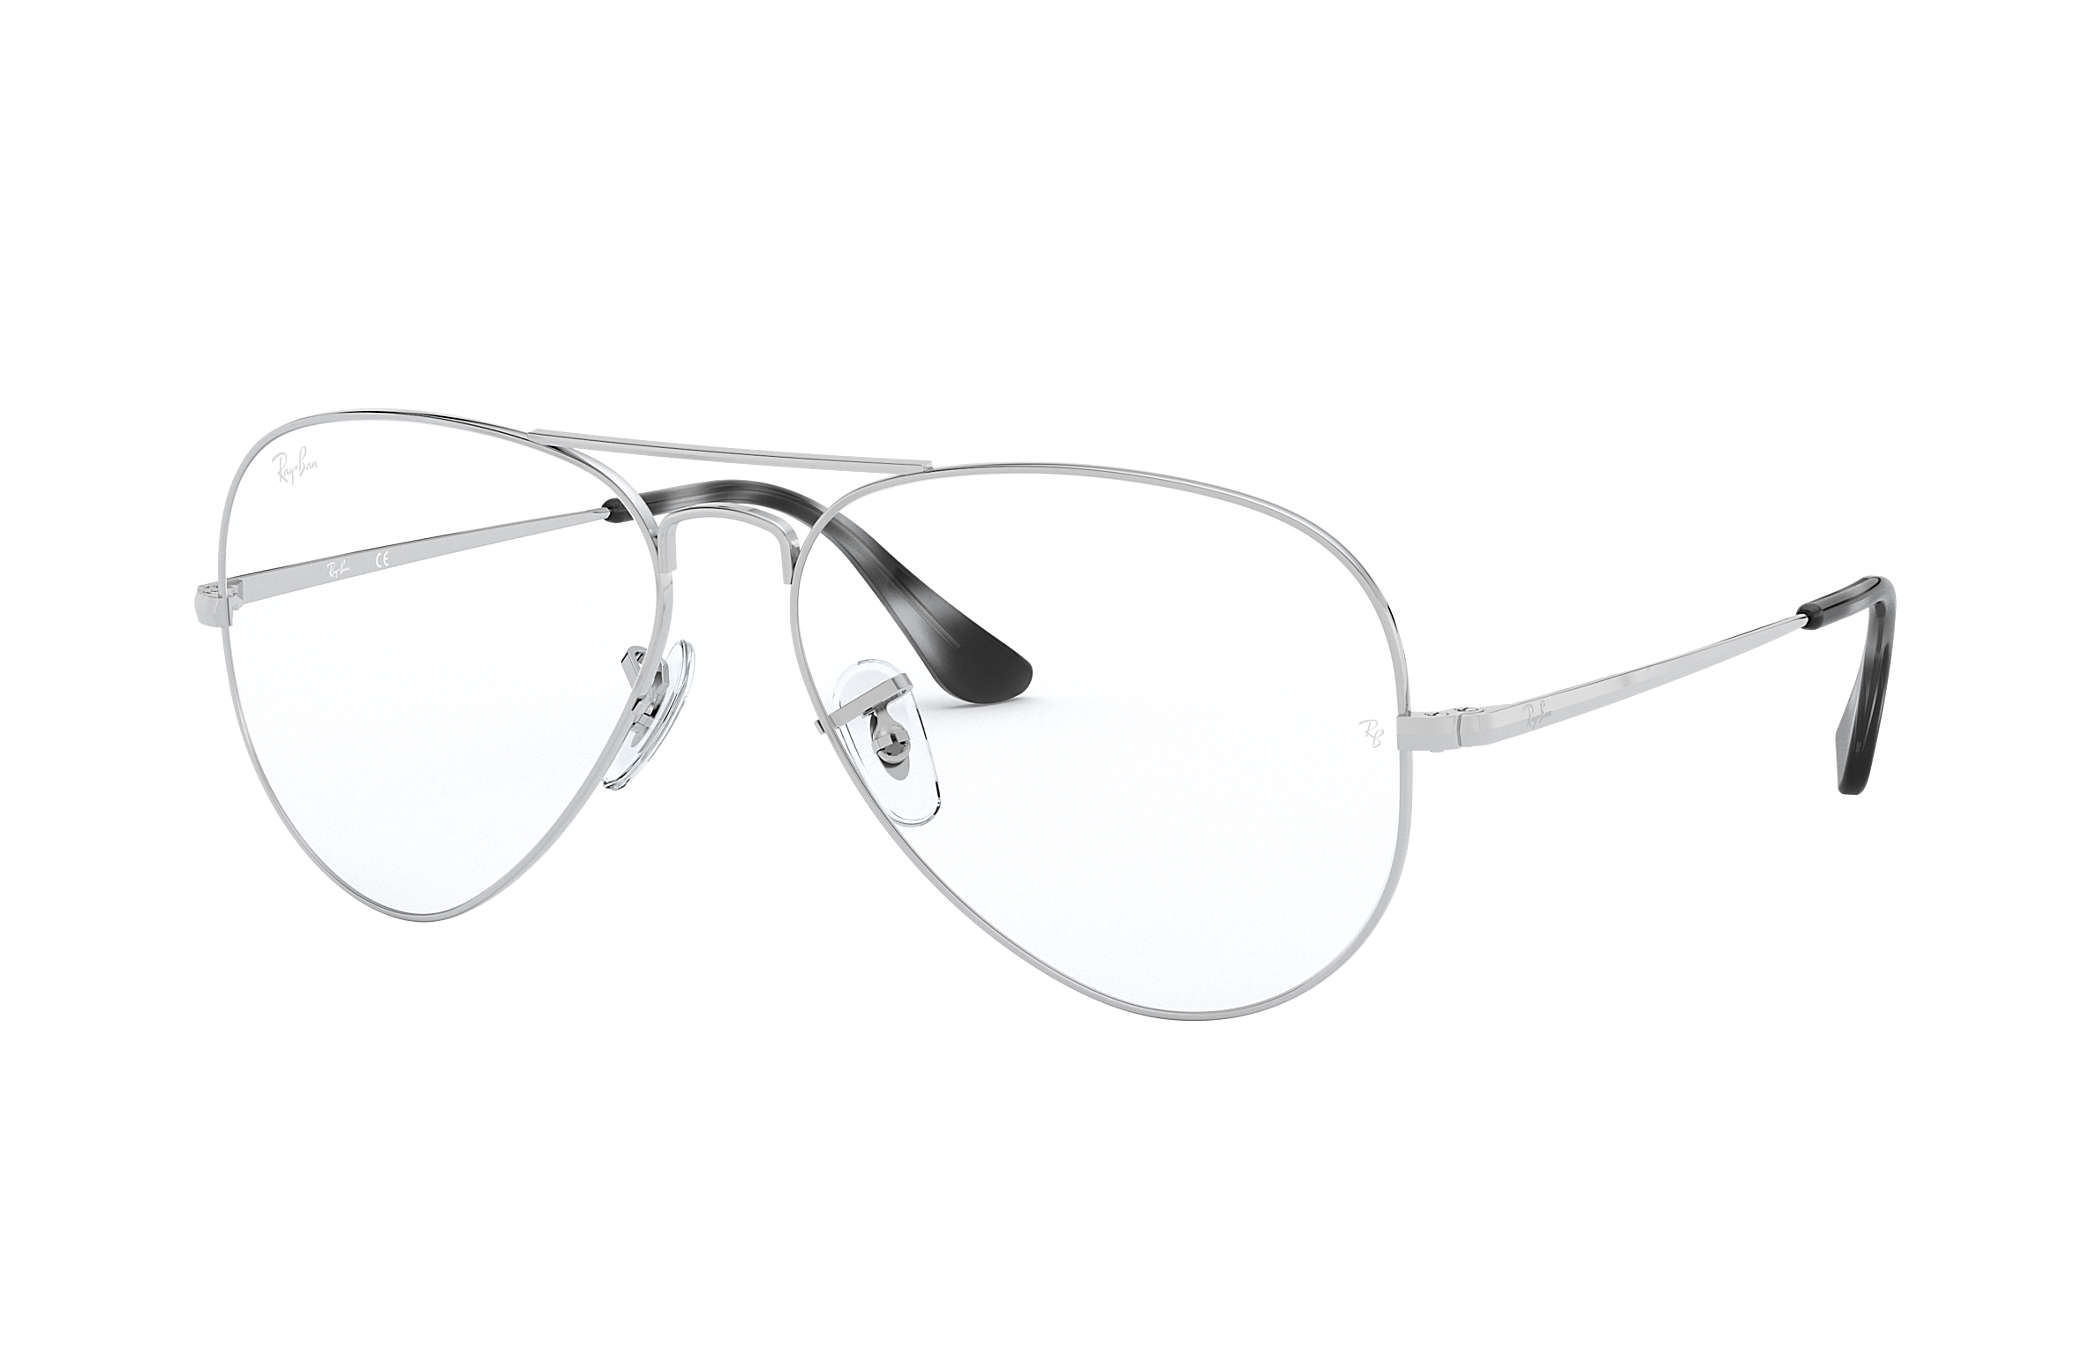 Ray-Ban prescription glasses Aviator Optics RB6489 Silver - Metal ...